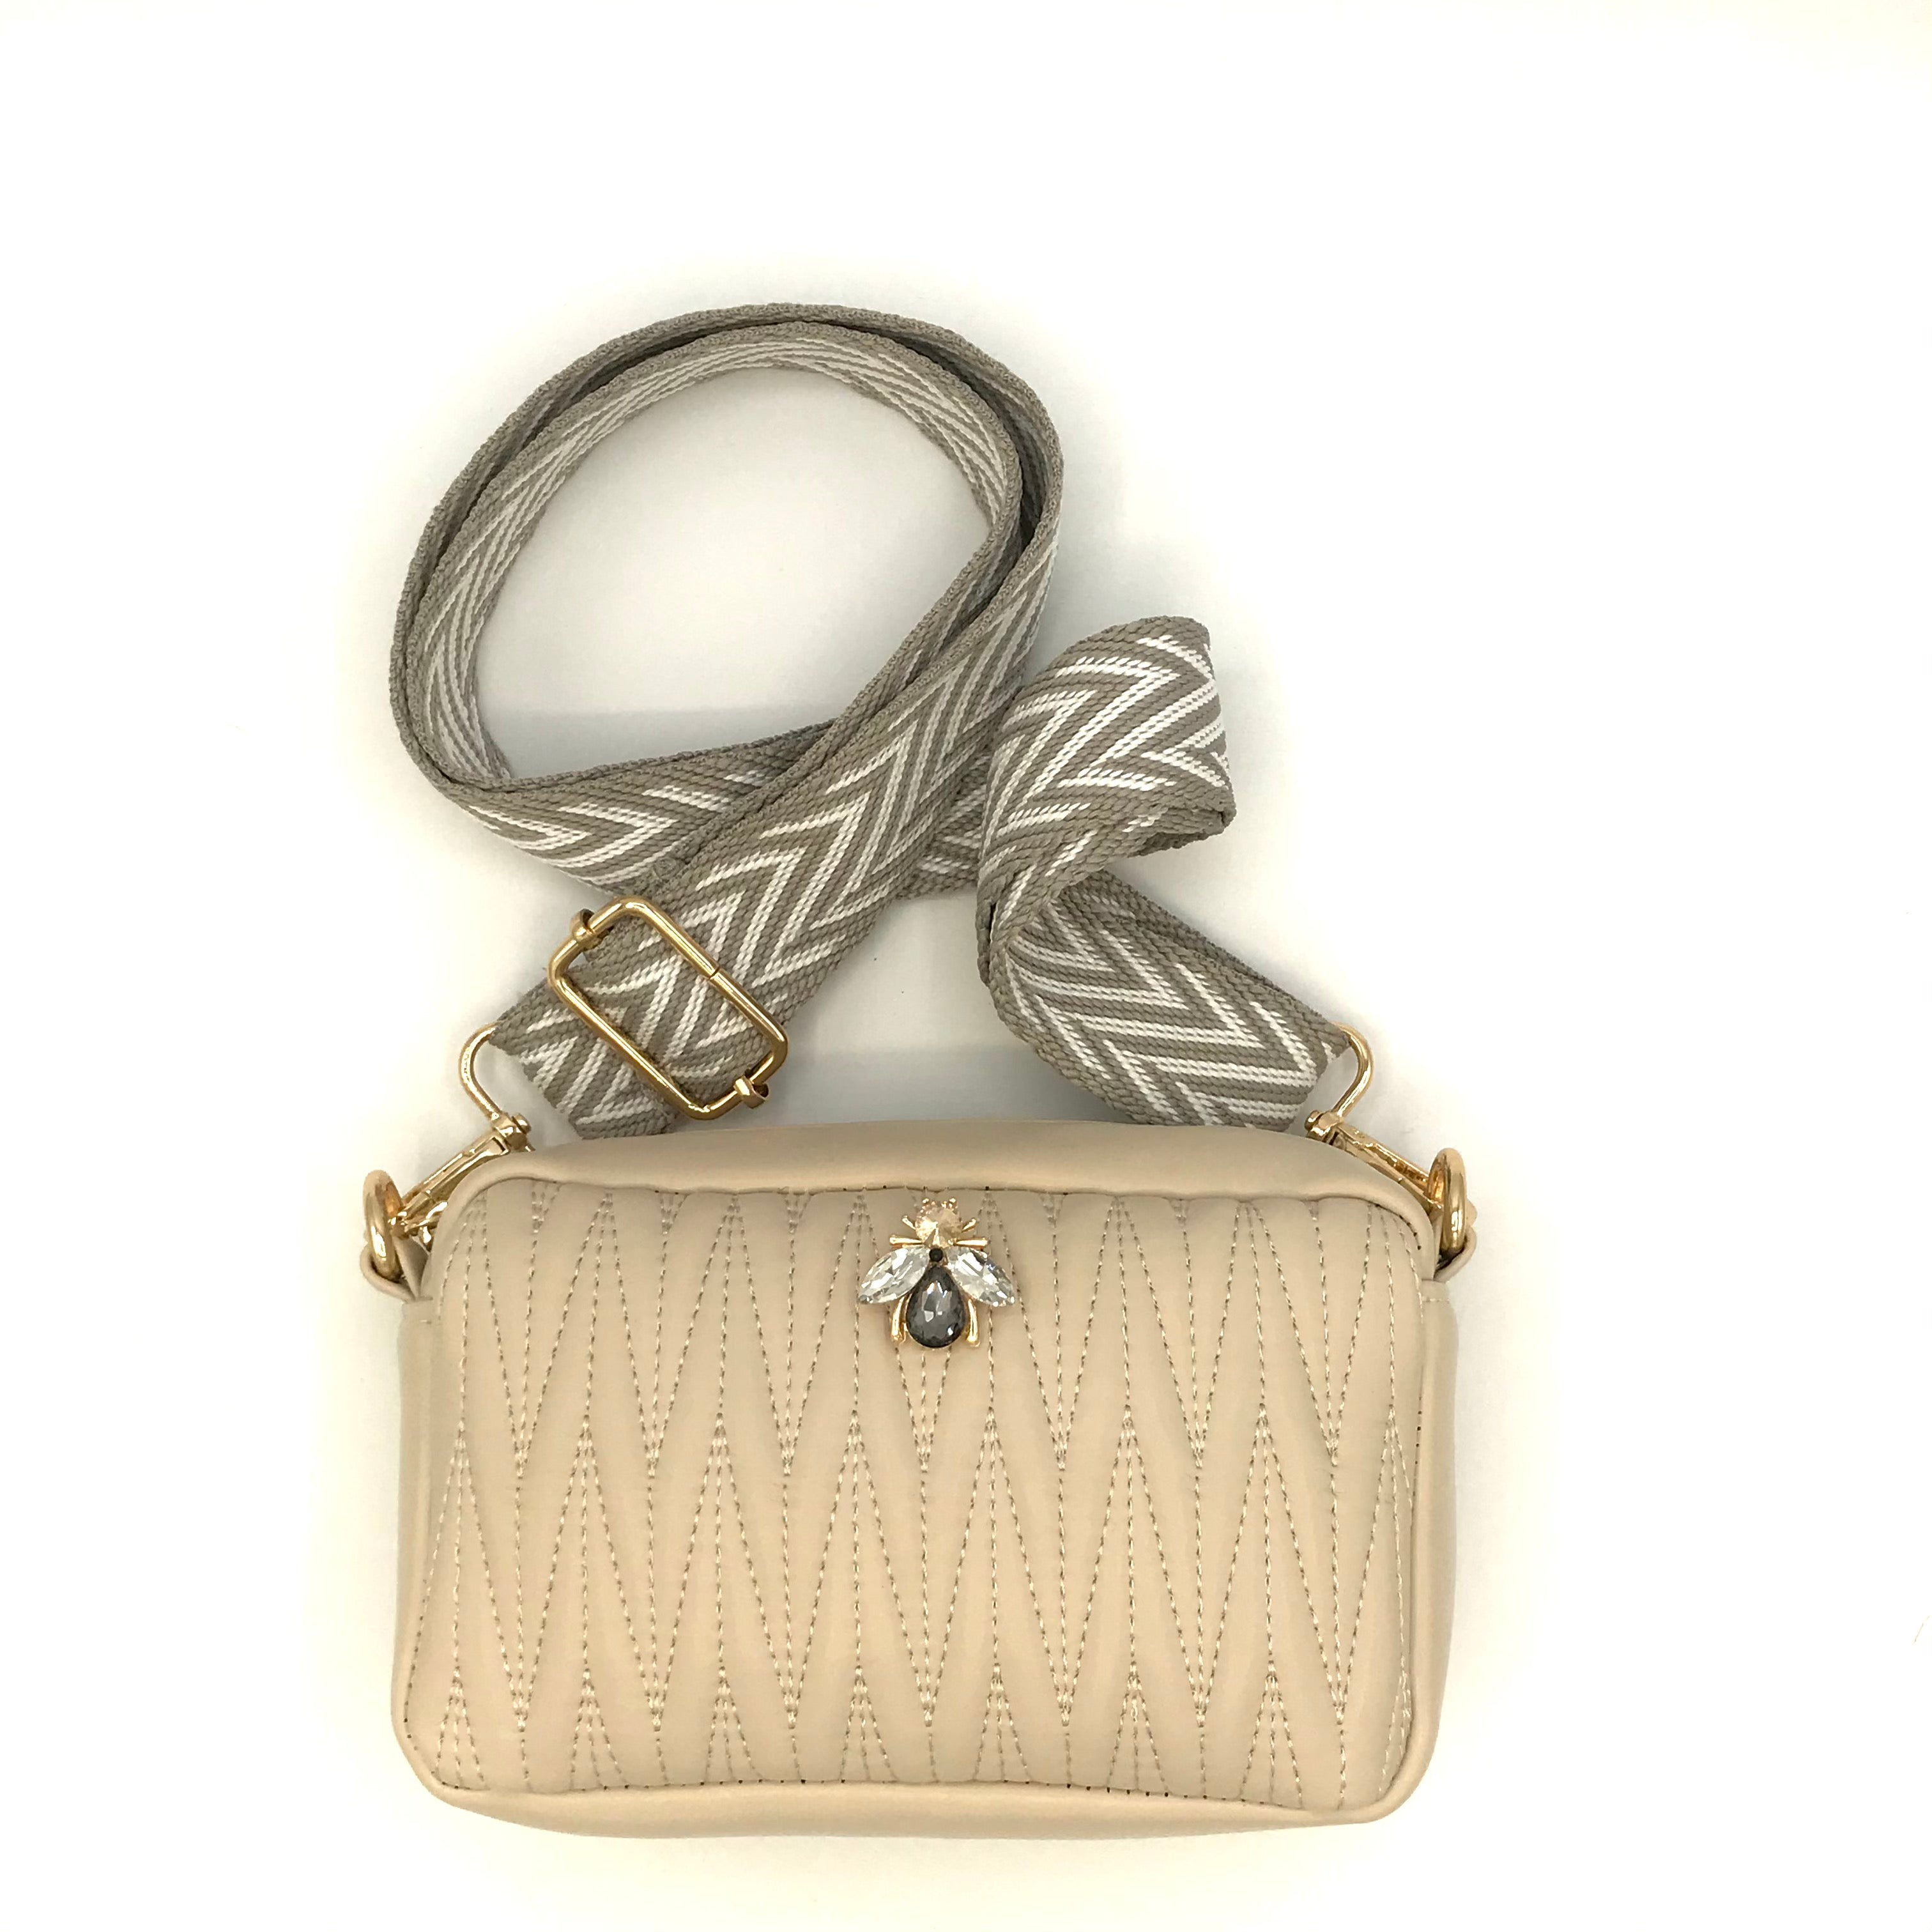 Mini cross body bag in vegan leather - Rivington in cream